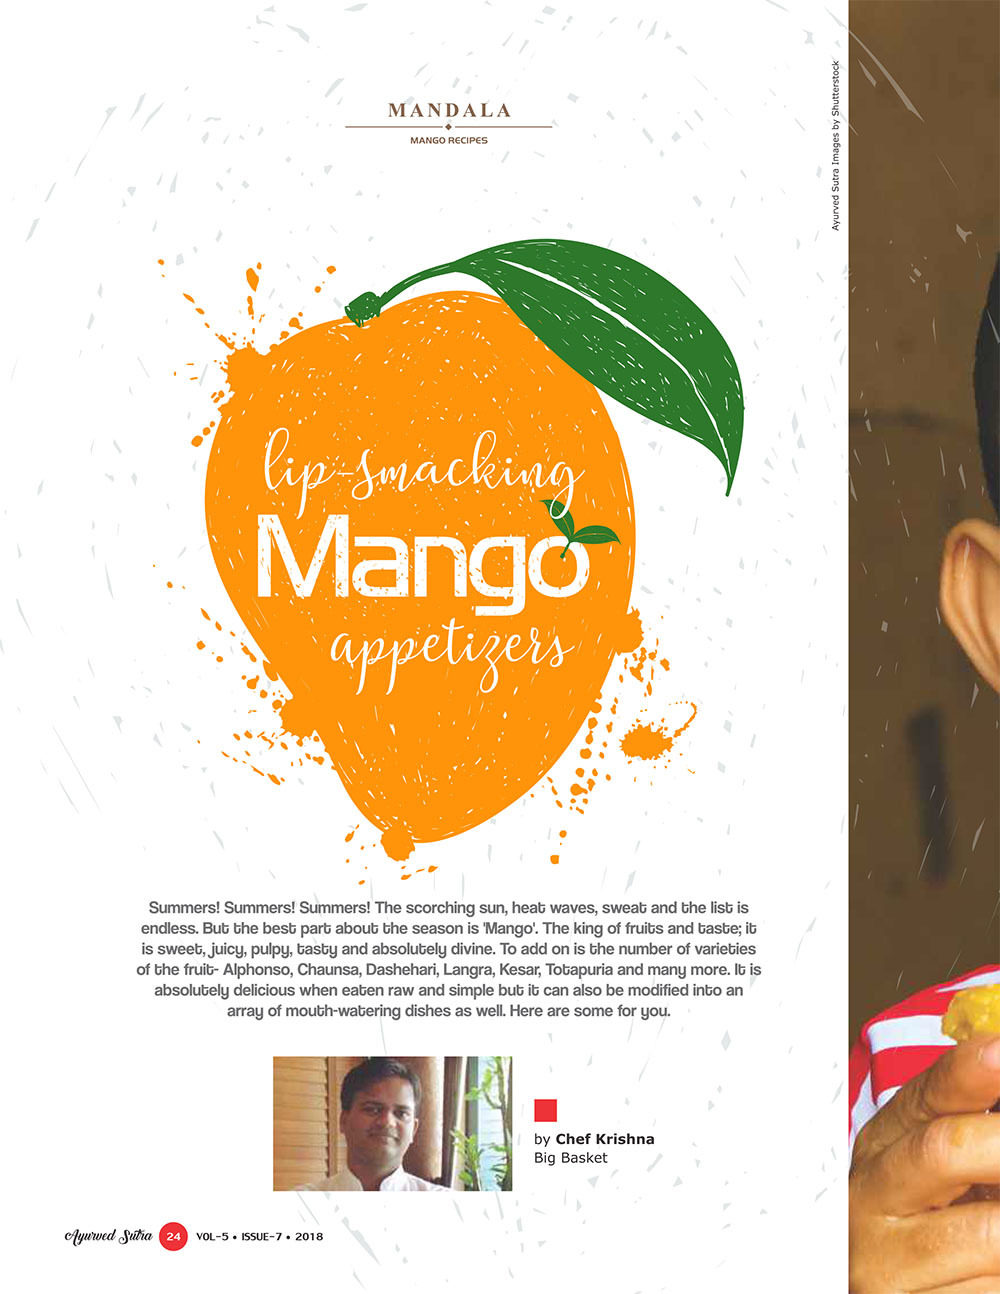 Ayurvedsutra Vol 05 issue 07 26 - Lip-Smacking Mango appetizers